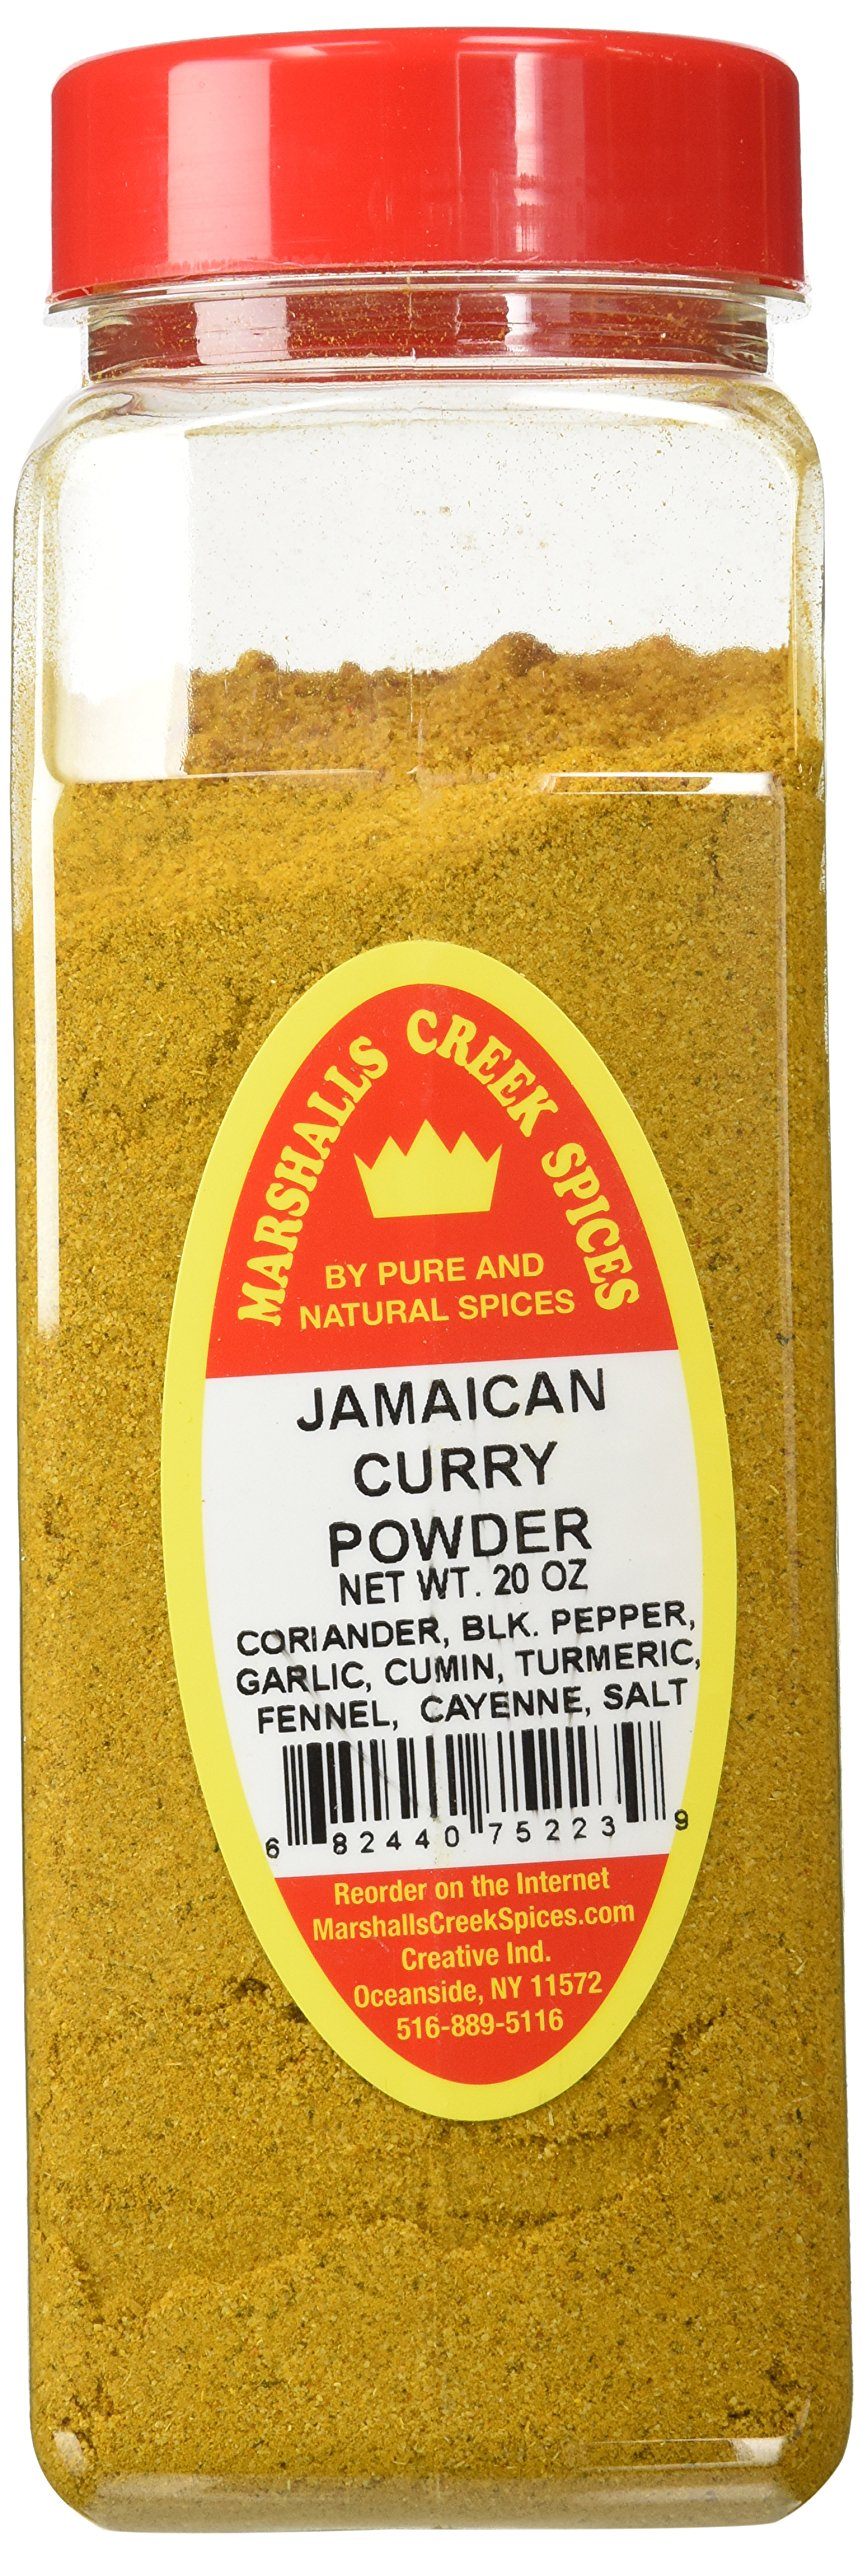 Marshalls Creek Spices X-Large Size Jamaican Curry Powder, 20 Ounces